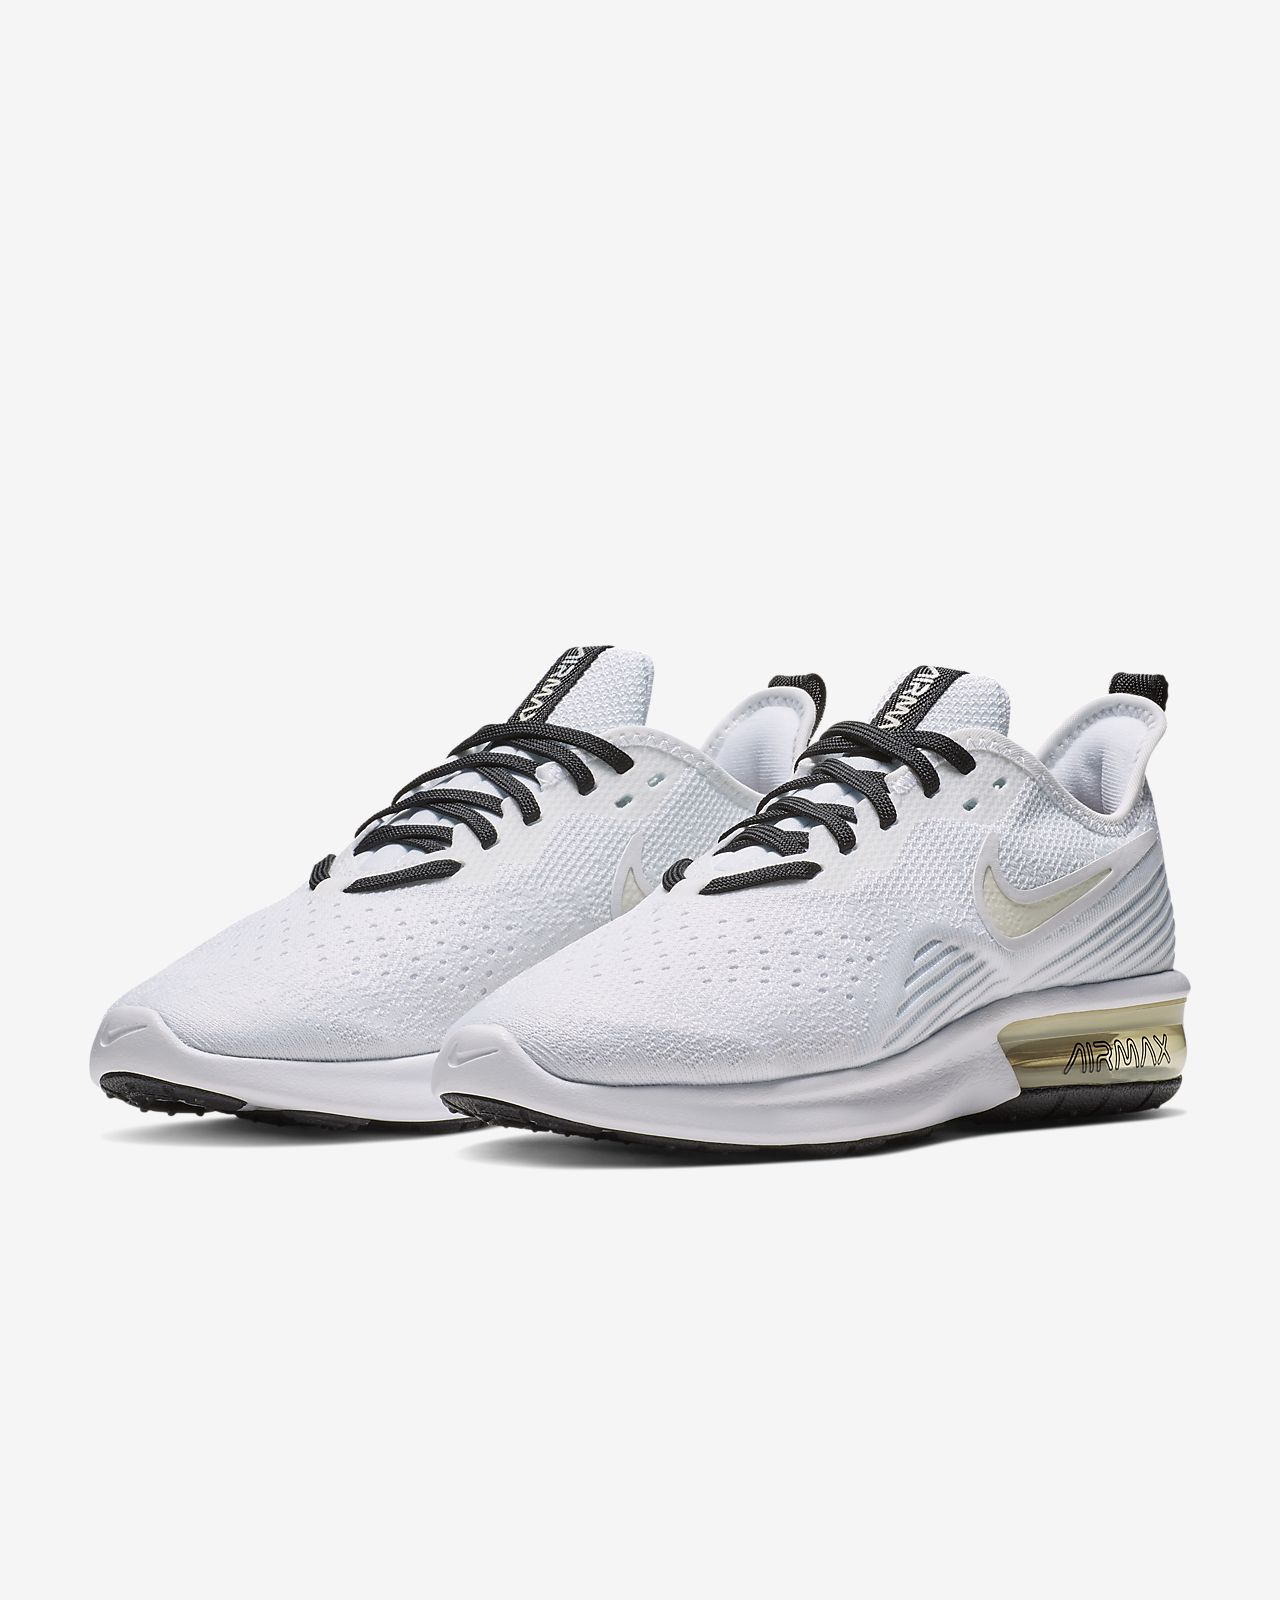 new product 30c5d 4f334 ... Nike Air Max Sequent 4 Women s Shoe